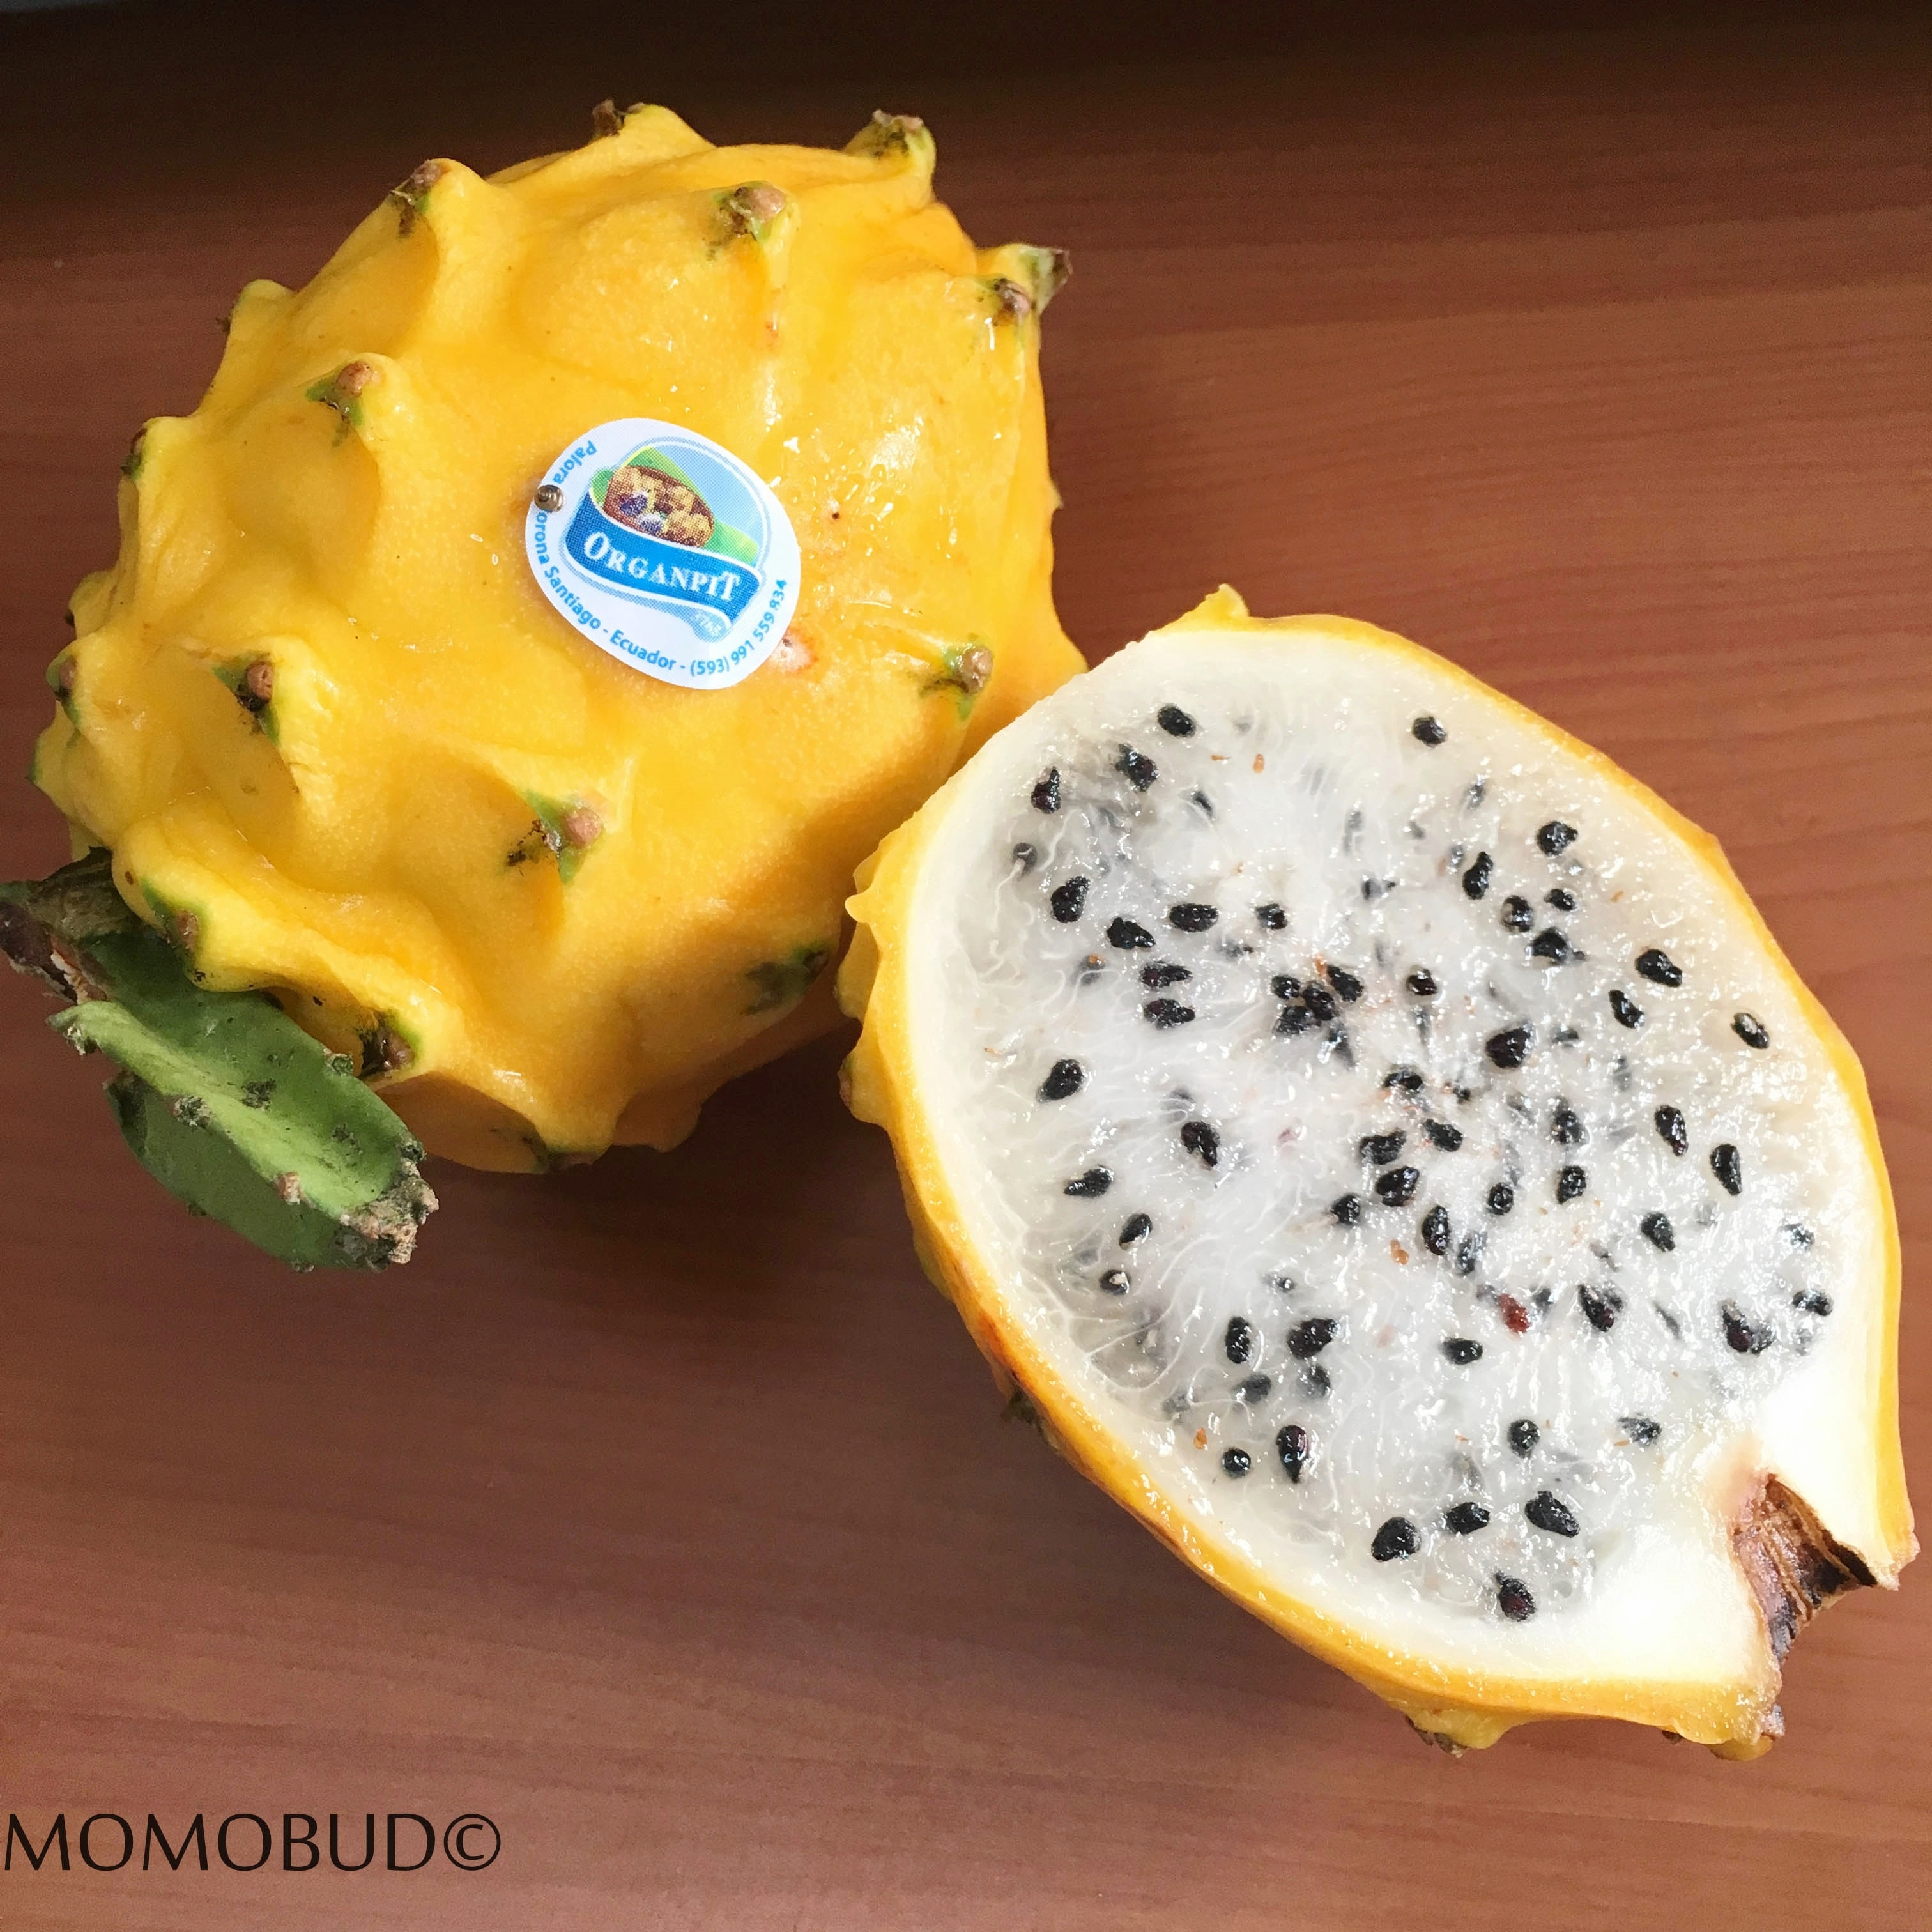 Golden dragon fruit price test 350 steroids for sale